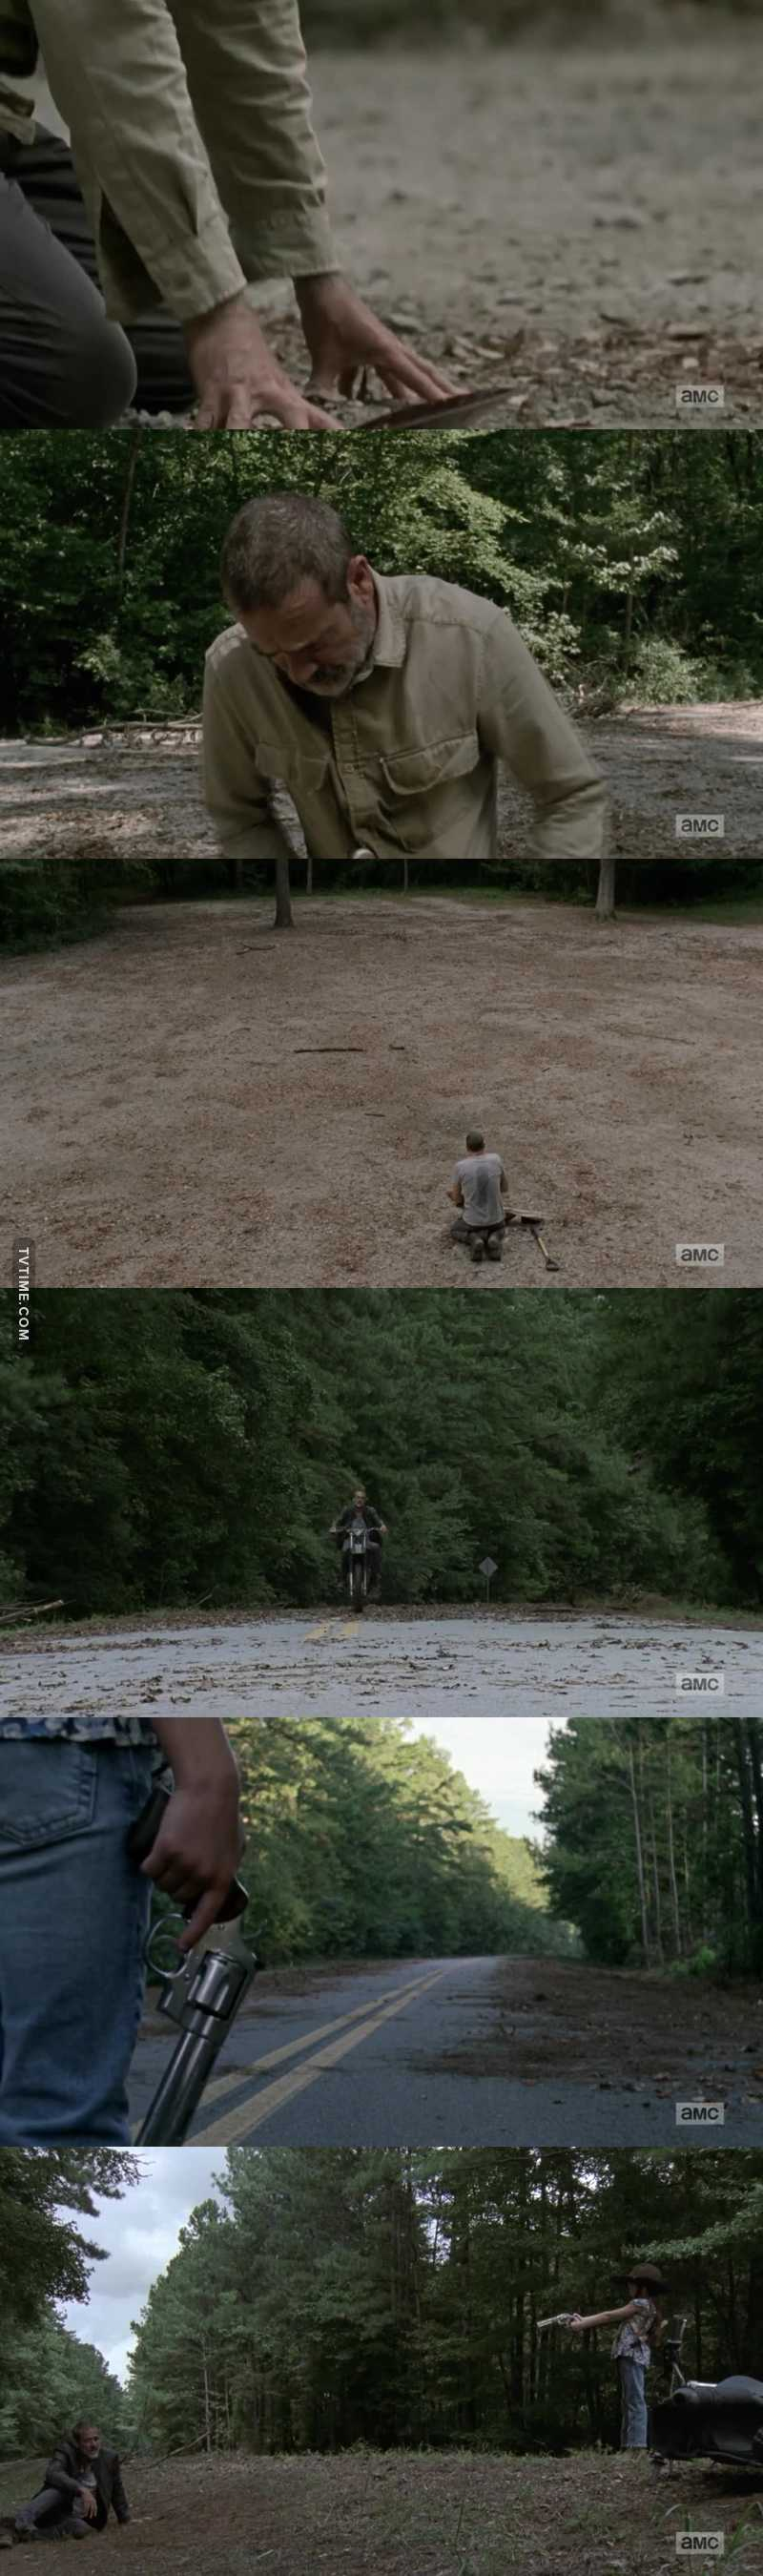 He went back to where it all started, the beginning of the end (where he killed Glenn and Abraham). He felt remorse and he's changed, he's another person now and I can't wait to see more of him & Judith 😻 ❤️.